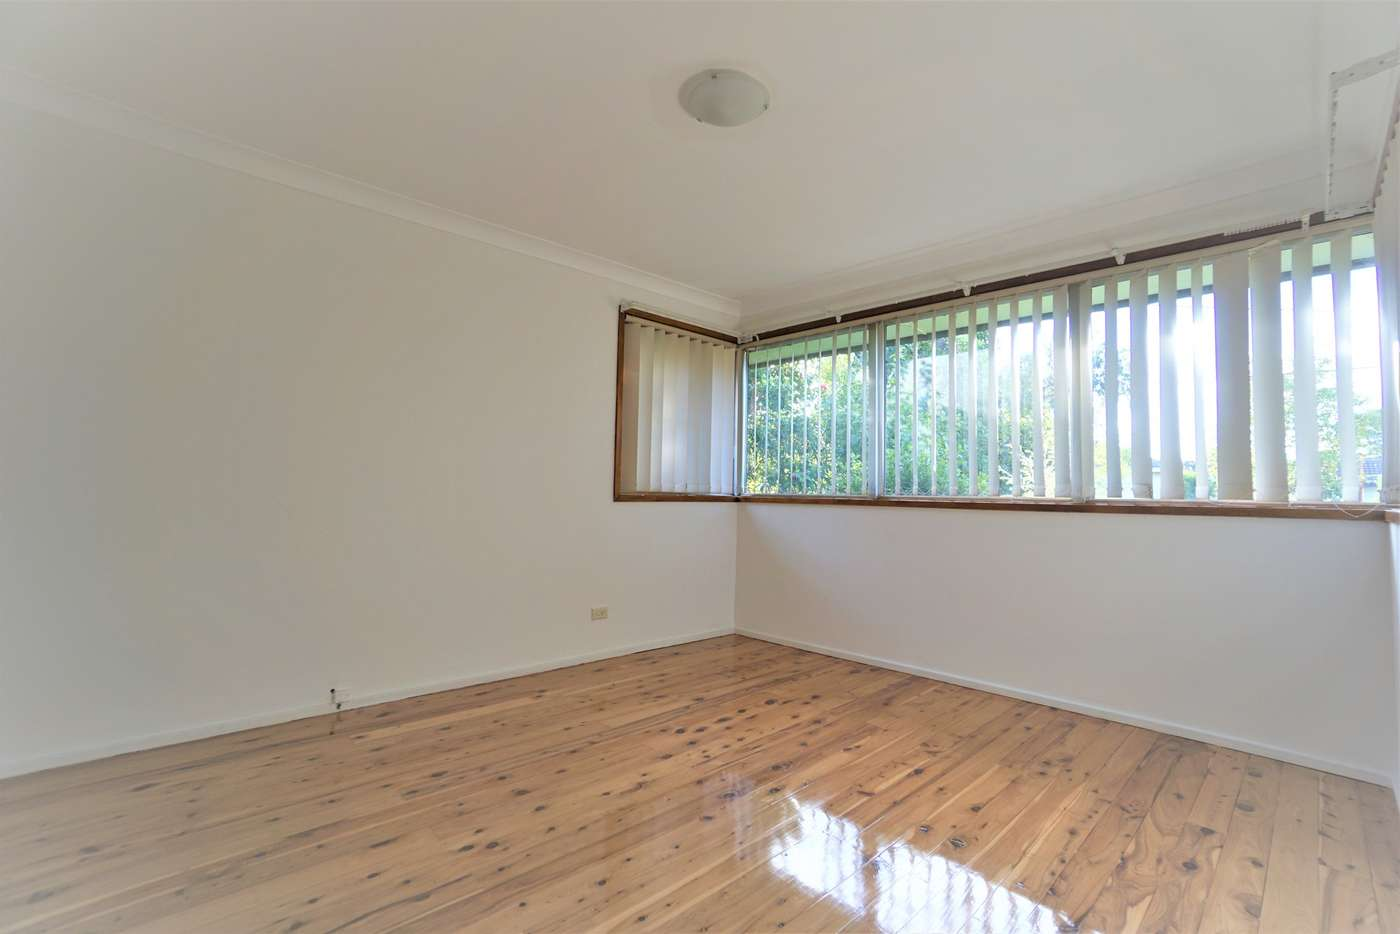 Sixth view of Homely house listing, 6 Malvern Avenue, Baulkham Hills NSW 2153